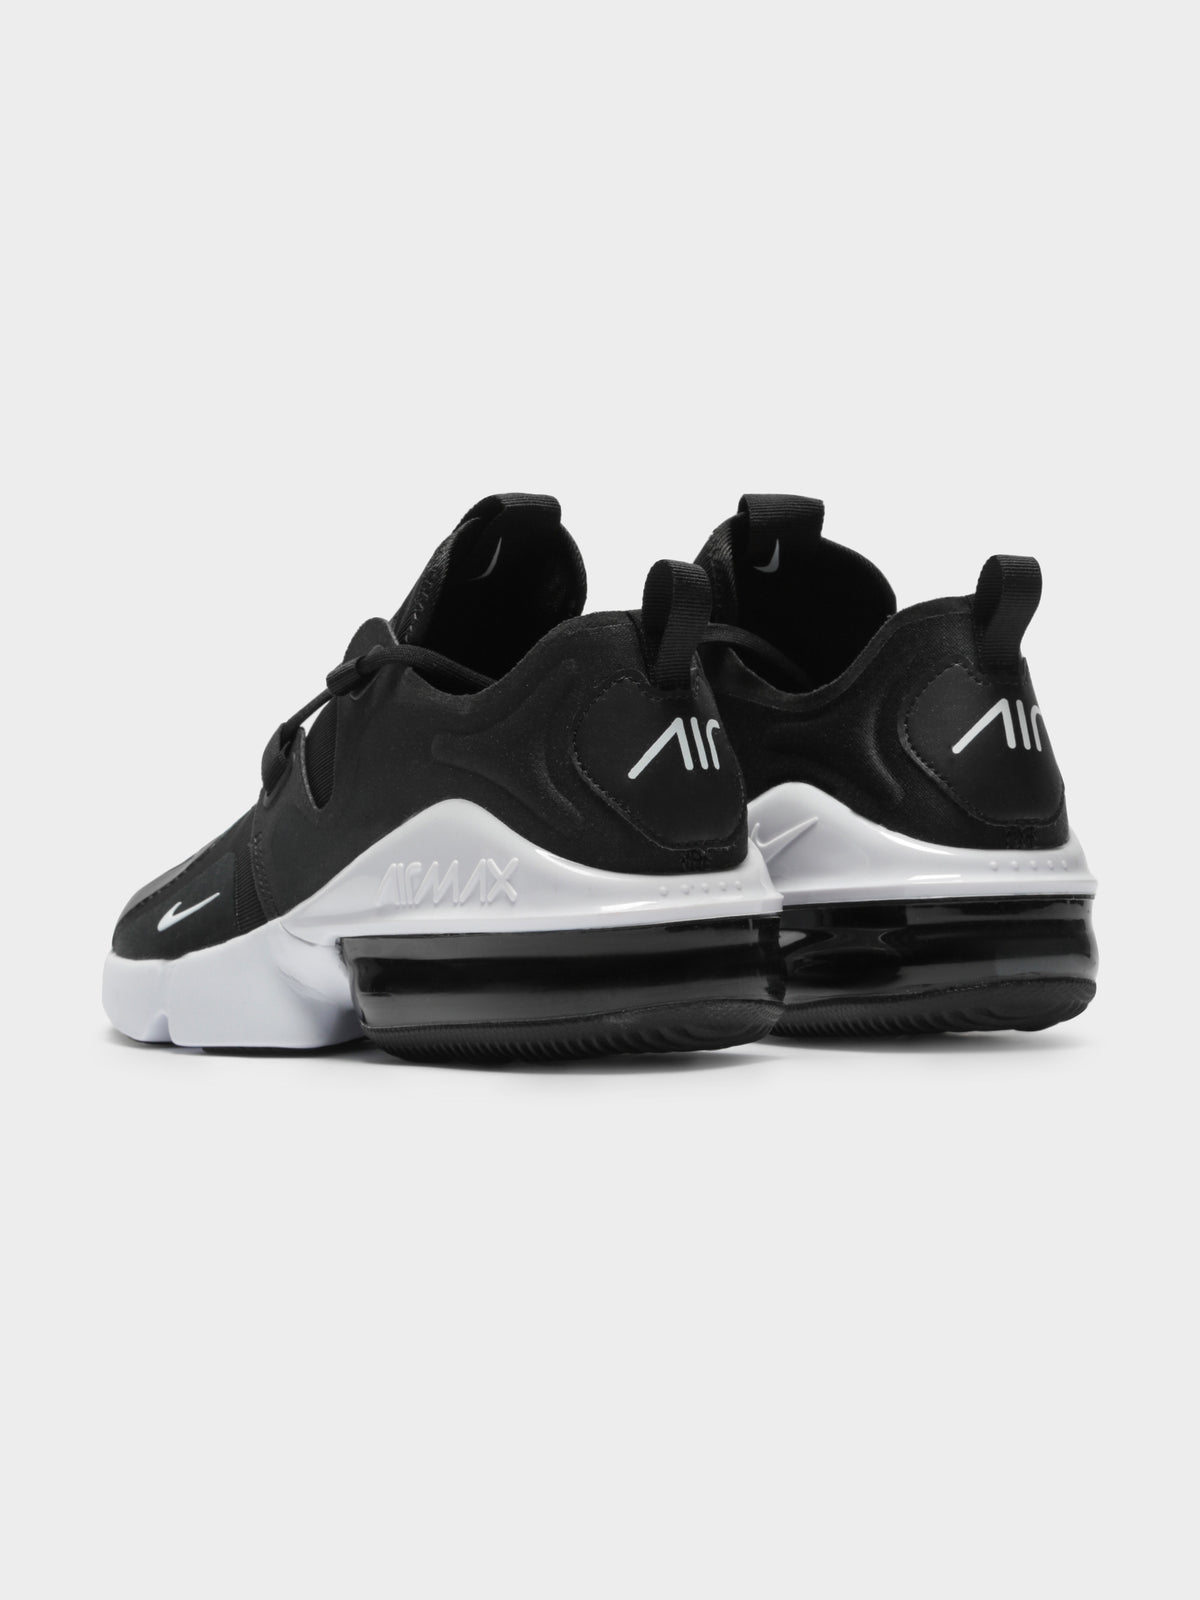 Mens Air Max Infinity Sneakers in Black & White